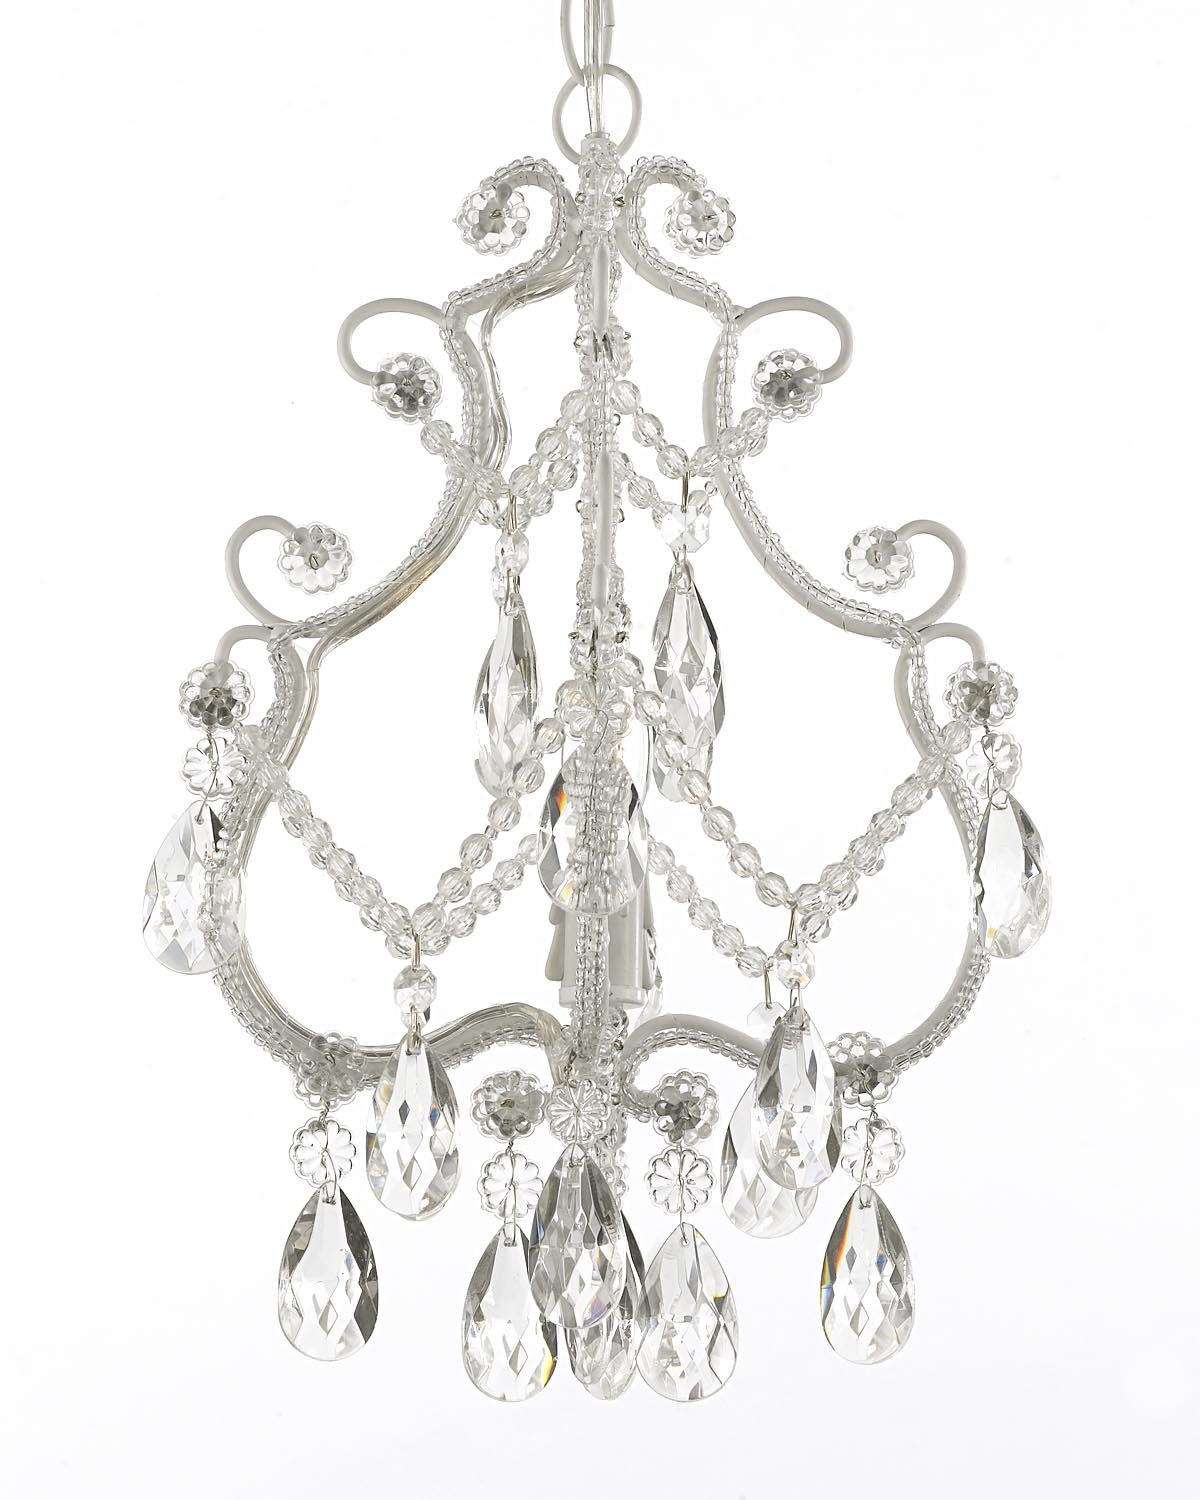 Wrought iron and crystal 1 light chandelier pendant white fixture wrought iron and crystal 1 light chandelier pendant white fixture lighting ceiling lamp hardwire and plug in amazon arubaitofo Image collections